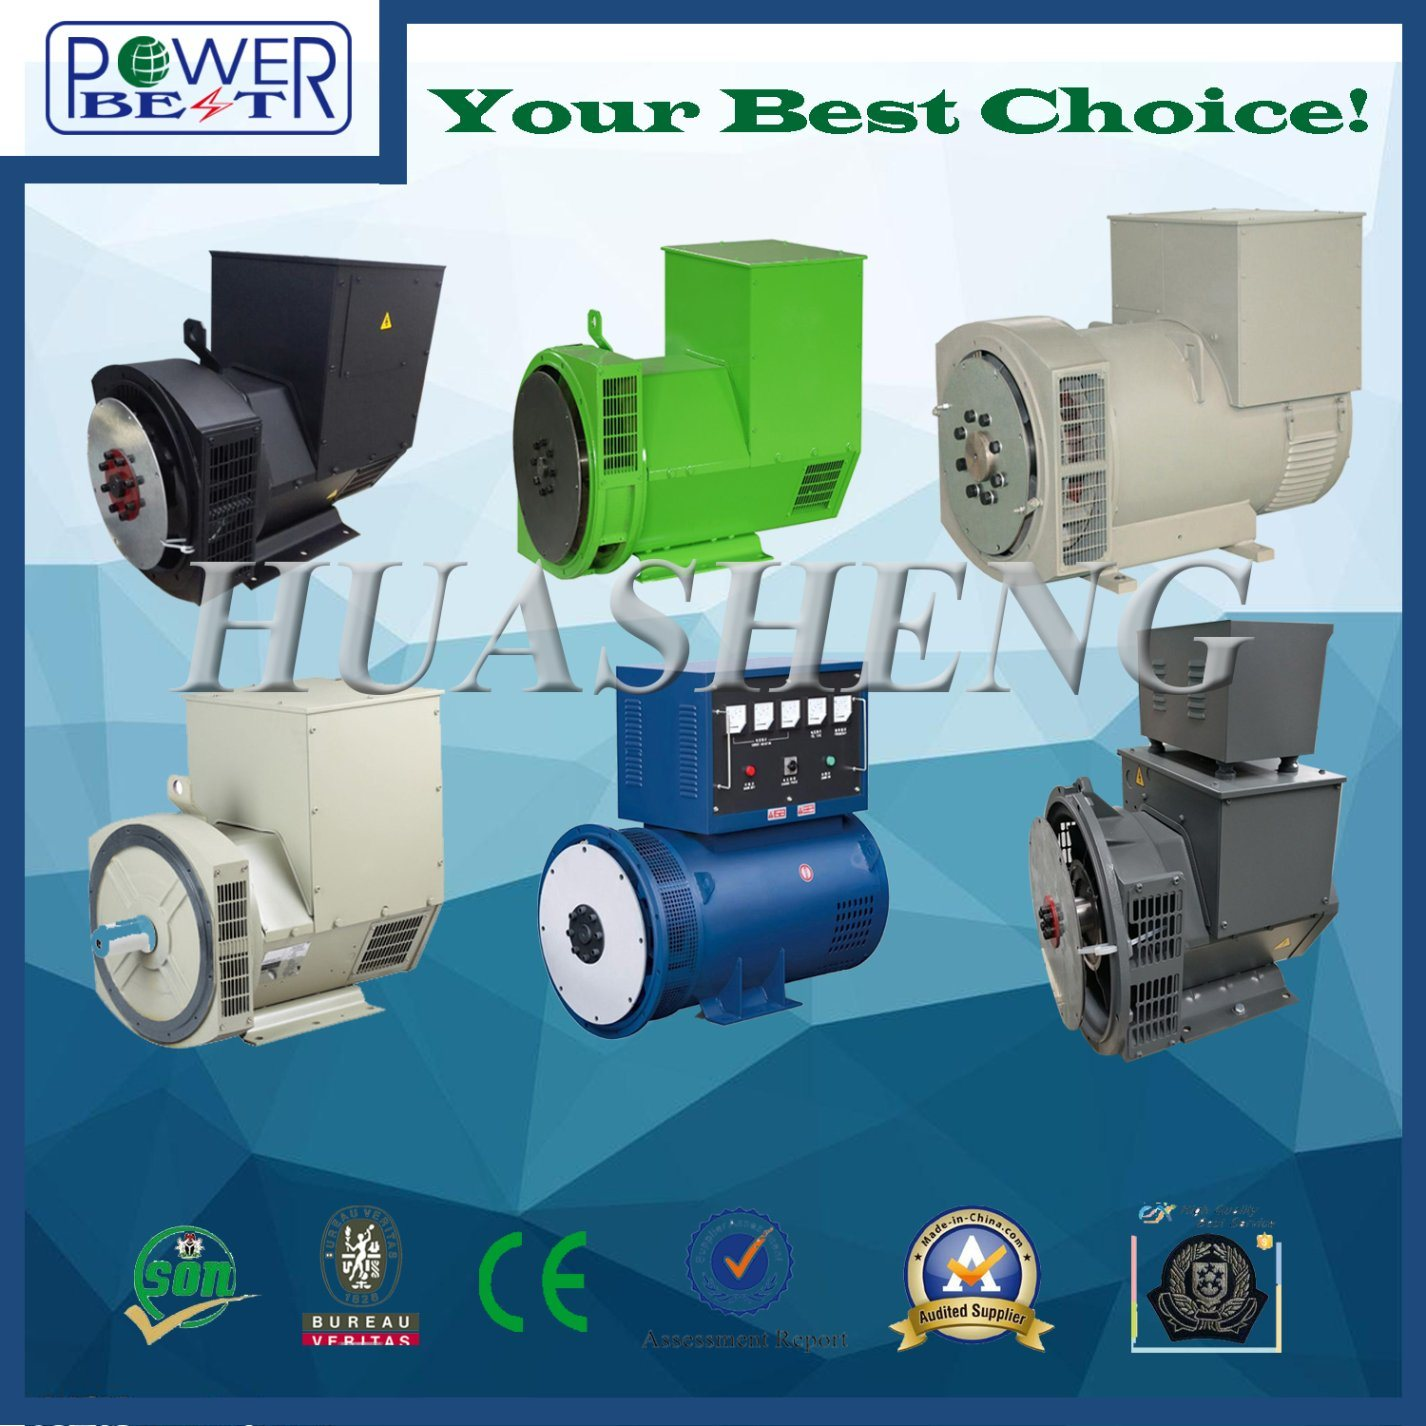 Stamford Brushless Dynamo Generator Ac Alternator China Motor Simple Electric Design Generators And Dynamos 2easy Paralleling With Mains Or Other Standard 2 3 Pitch Windings Avoid Excessive Neutral Currents